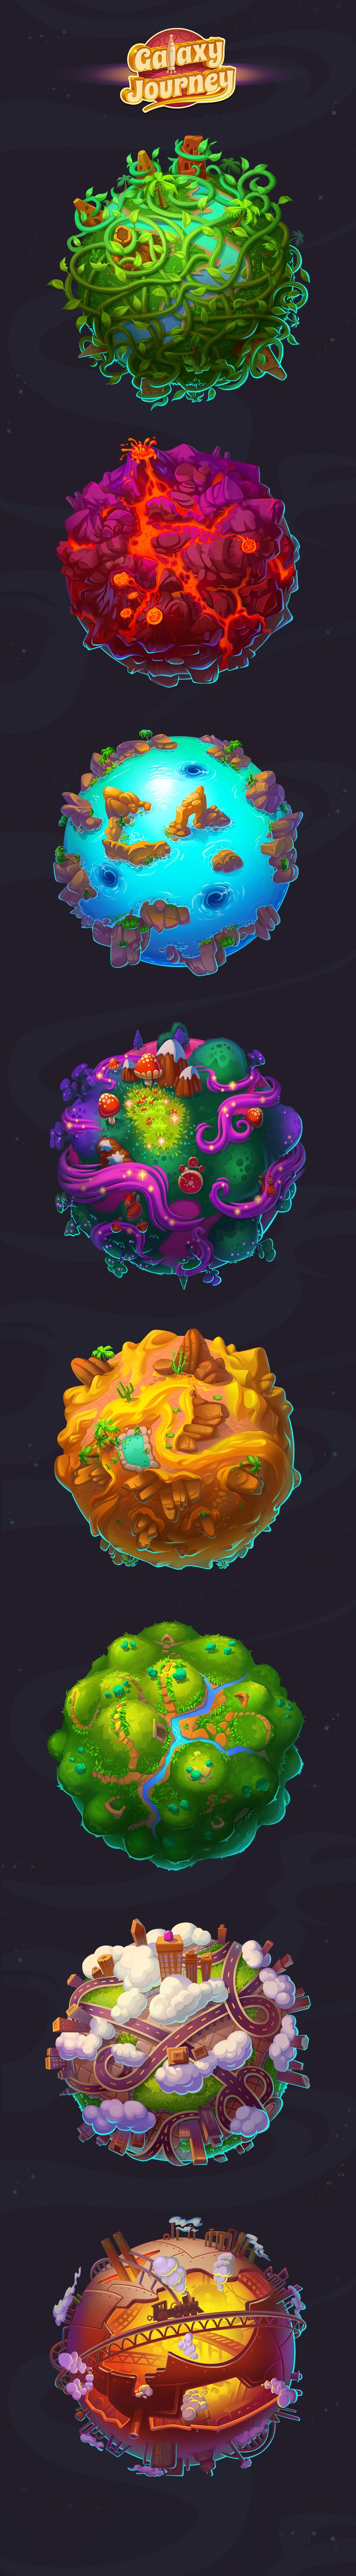 Galaxy Journey on Behance